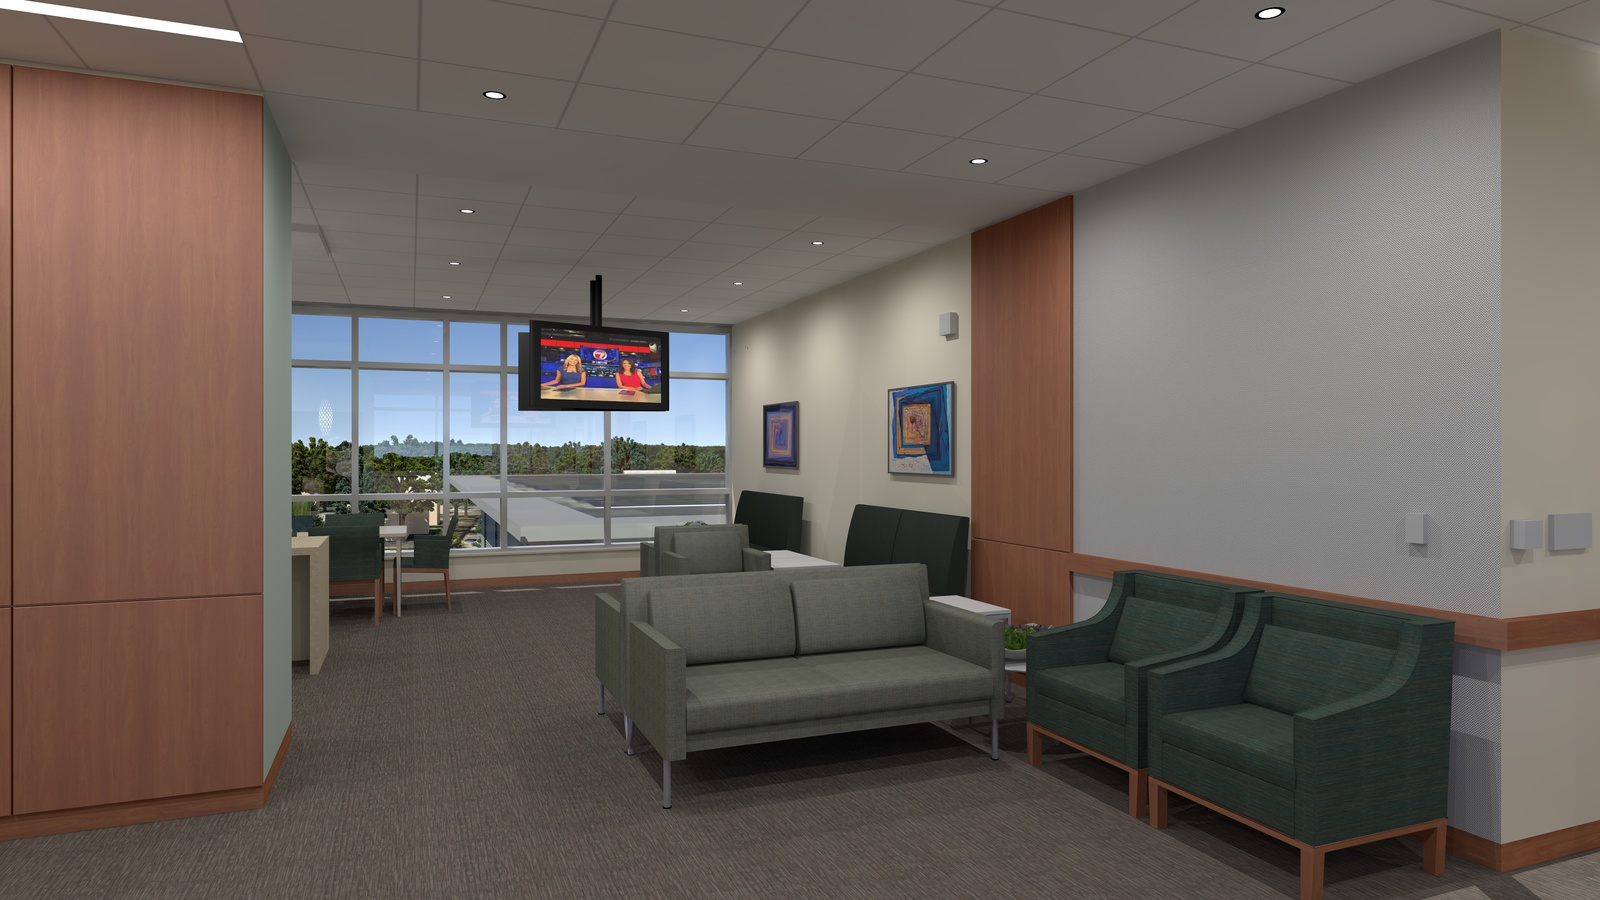 South Shore MA   South Shore Hospital Expansion And Renovation. Still From  Animation   ICU Waiting. Location: South Shore, MA Project Designer:  Architect: ...